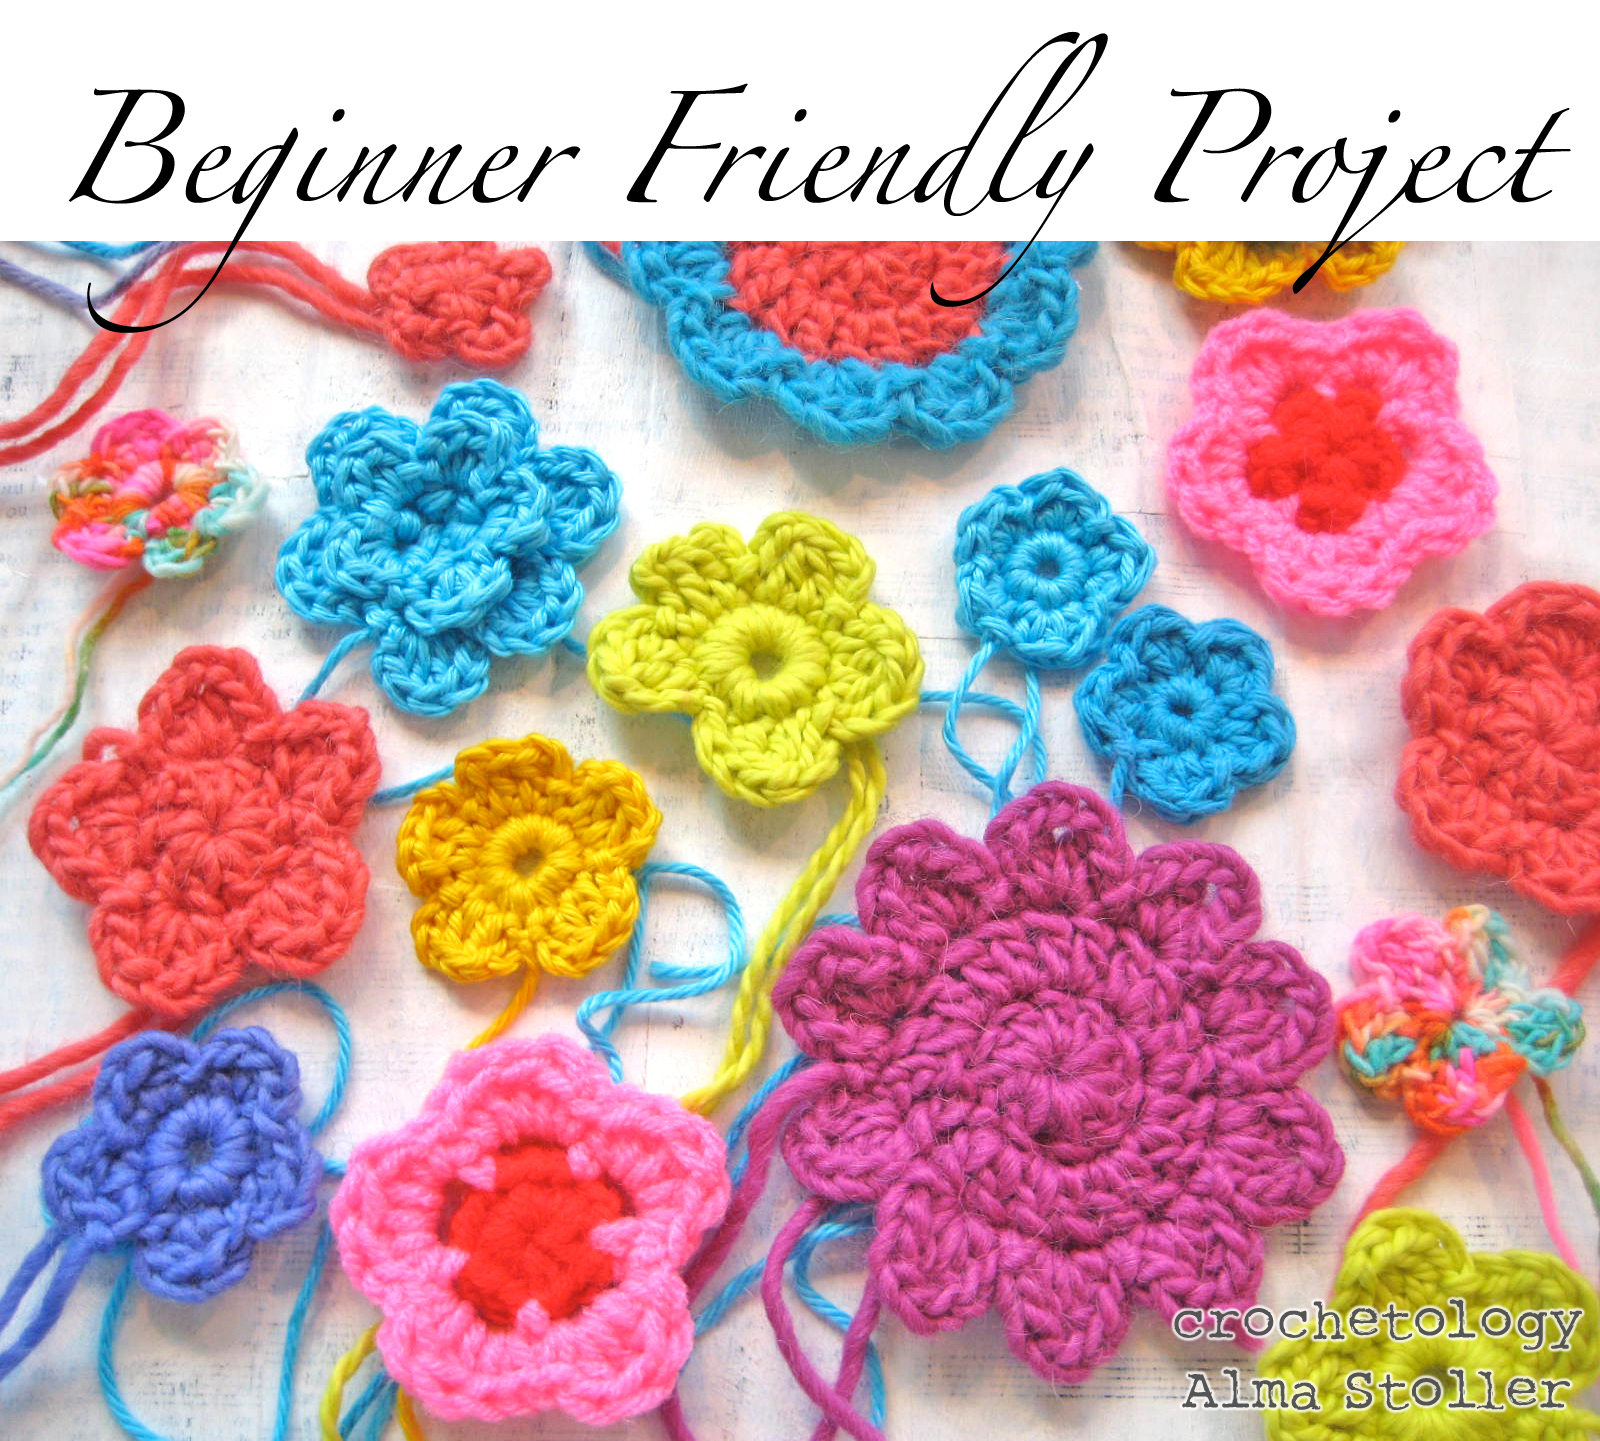 Crochetology: The Perks Of MakingA Crochet Flower